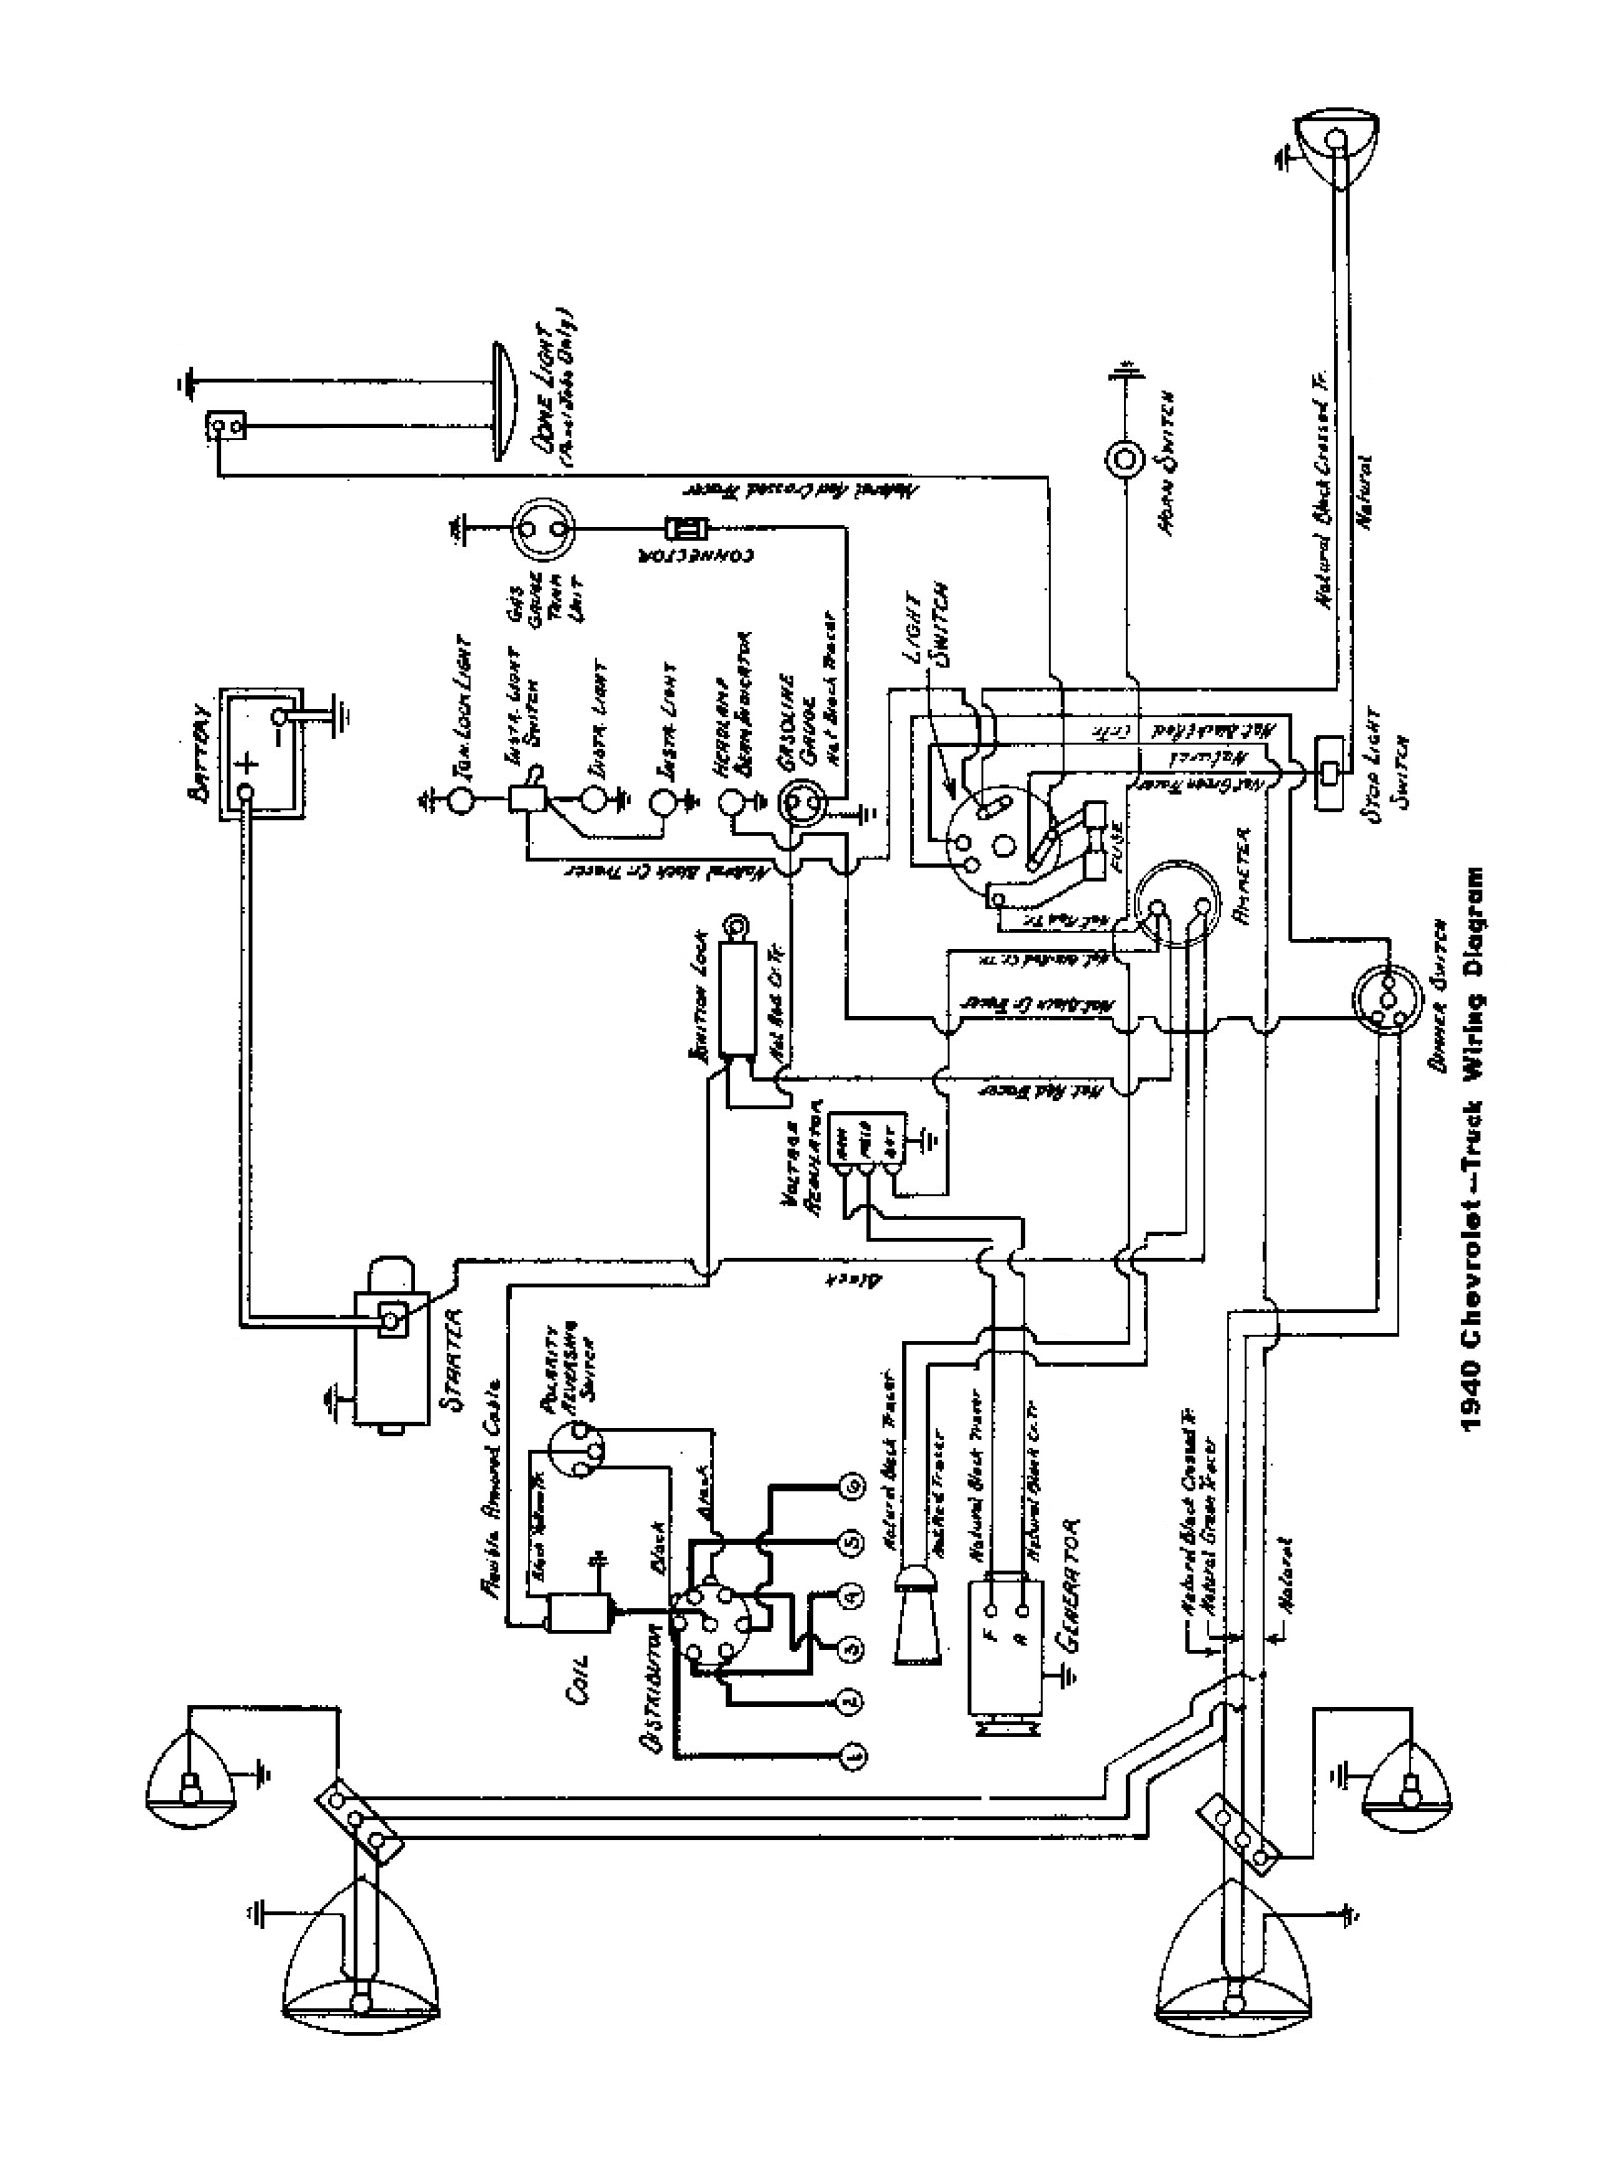 40truck chevy wiring diagrams 1948 cadillac wiring diagram at gsmportal.co